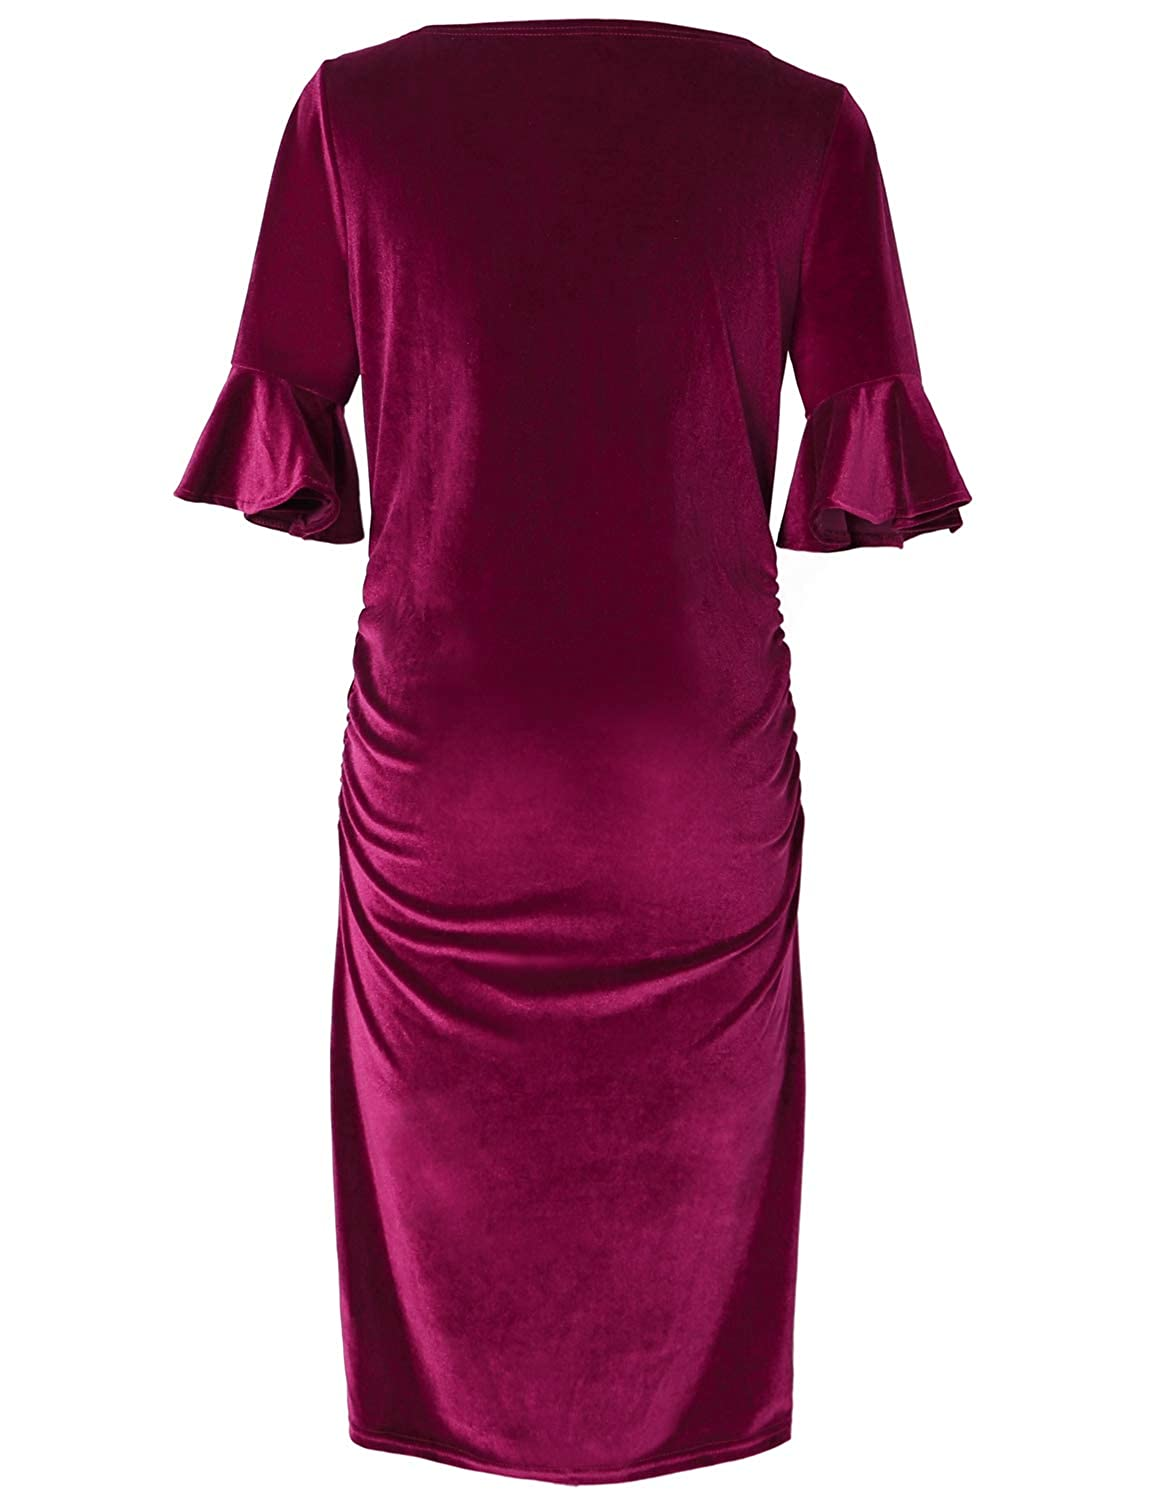 e7610d0d3f33b PrettyLife Velvet Maternity Dress Bell Sleeves Ruched Knee Length Pregnancy  Party Formal Bodycon Dress (Wine Red, XL): Amazon.ca: Clothing & Accessories